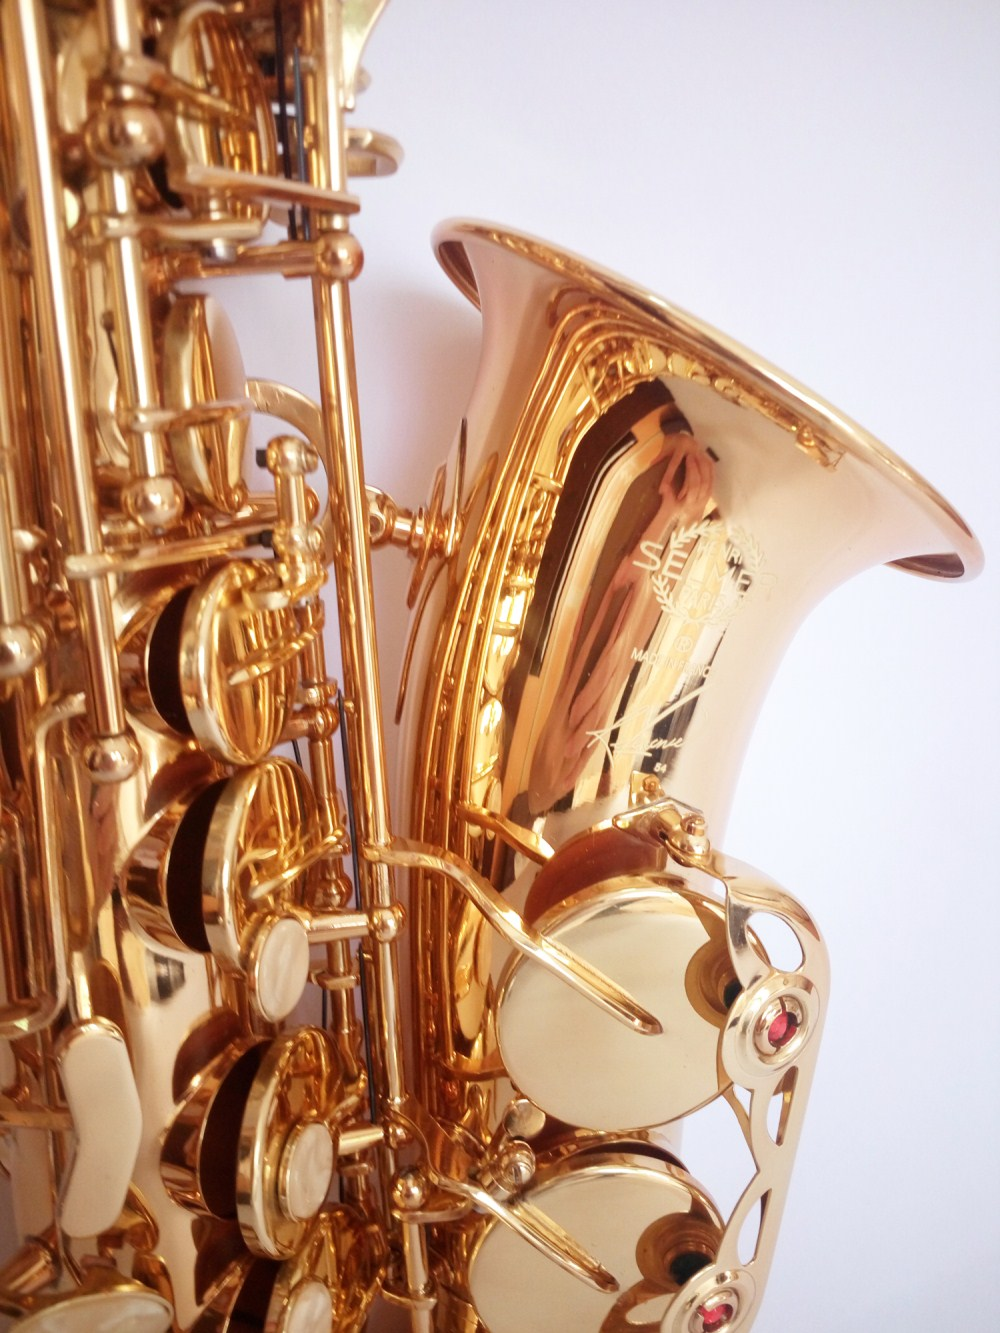 Sales Alto Sax France Selmer 54 Saxophone Eb playing music real photo shoot New Sax electrophoresis Golden Saxophone Promotions tenor saxophone free shipping selmer instrument saxophone wire drawing bronze copper 54 professional b mouthpiece sax saxophone